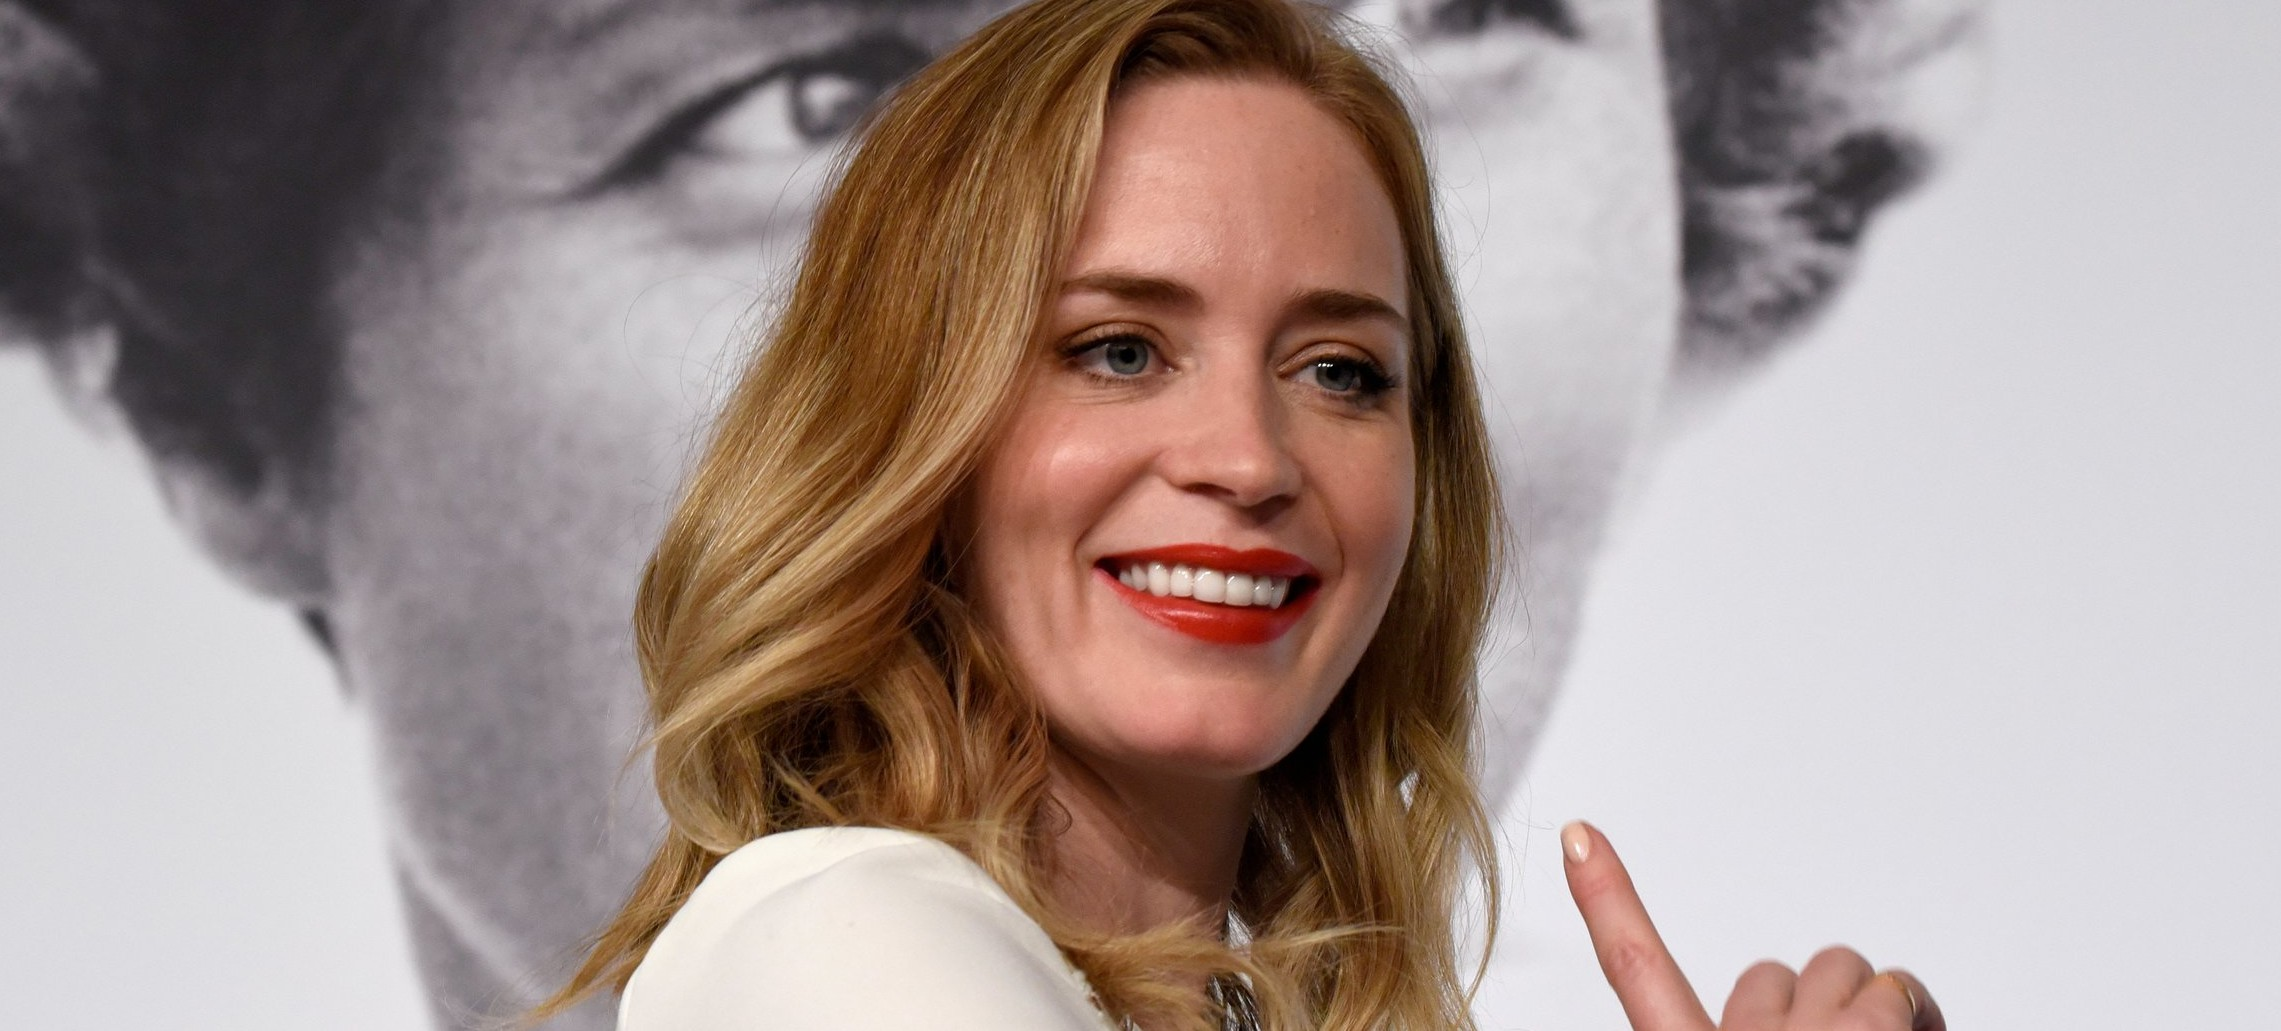 68th Cannes Film Festival – Sicario Premiere, Photocall, Press & After Party Photos